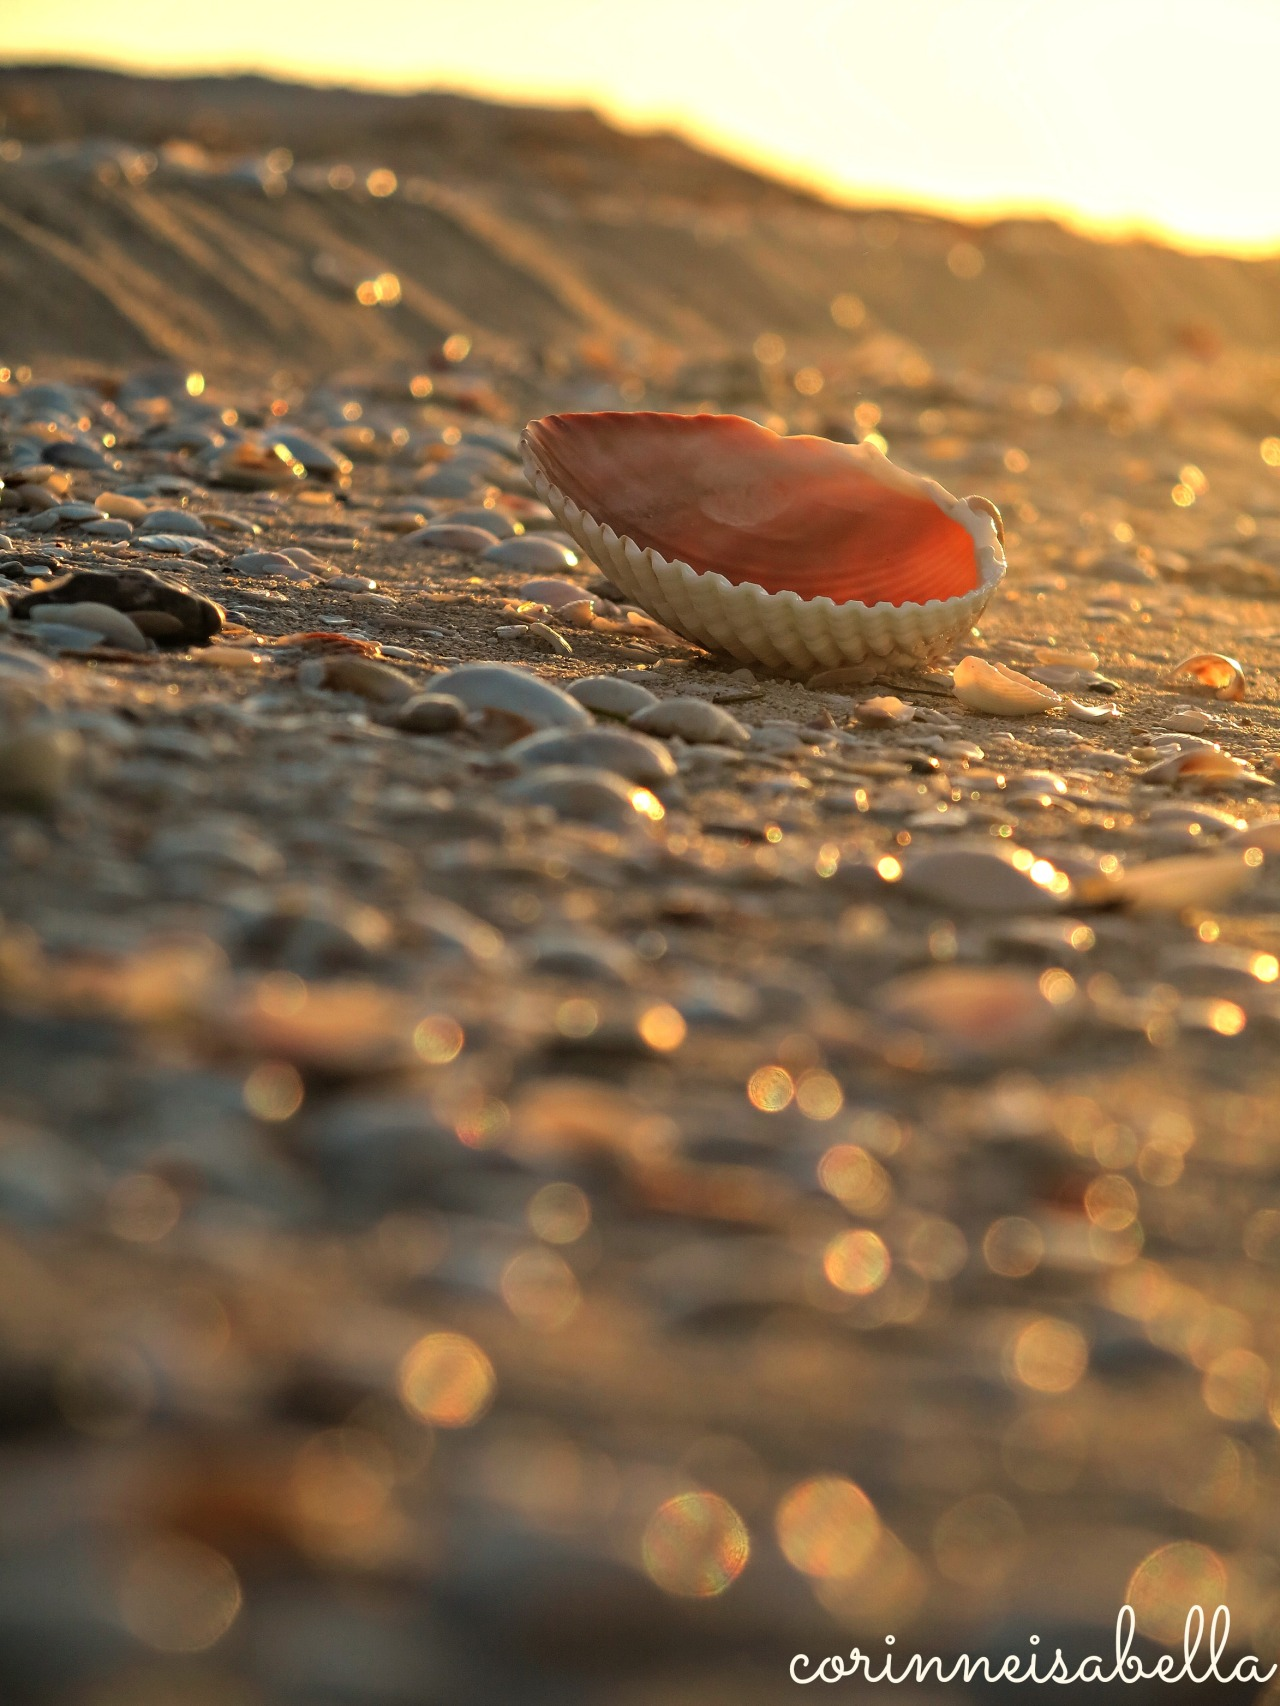 Seashell at dusk